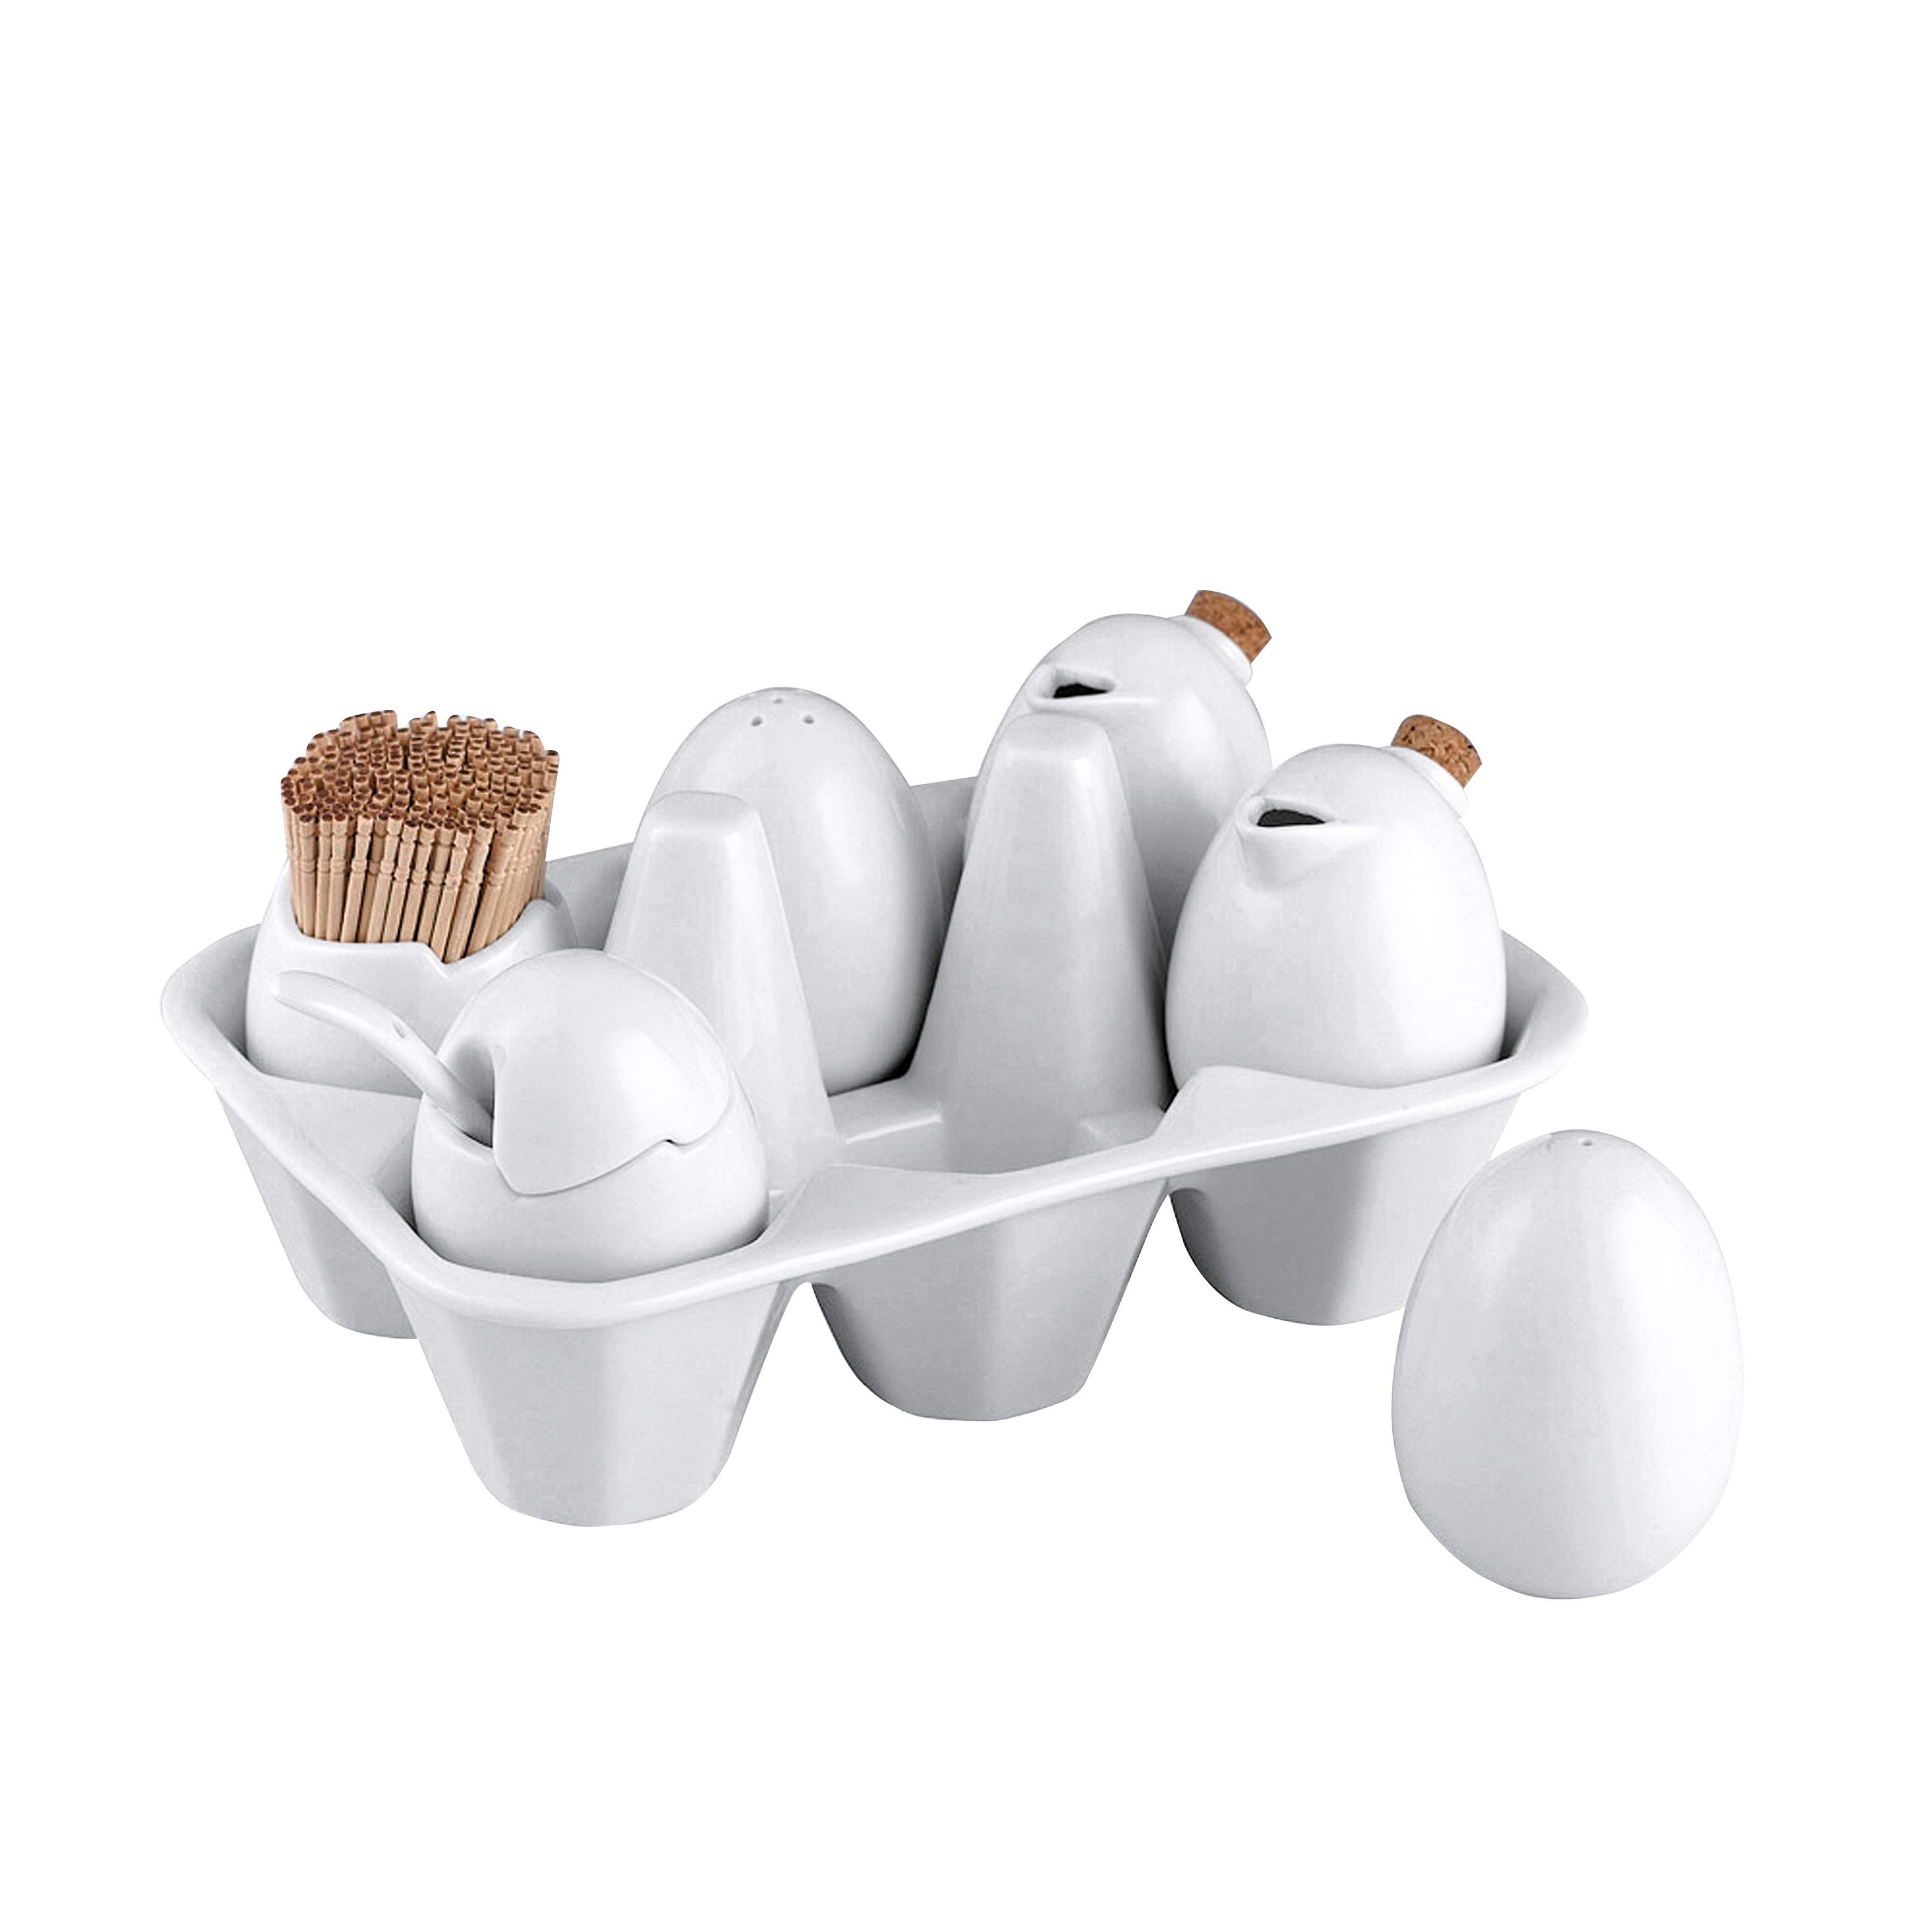 110580 egg crate condiments set dwell for Cheap quirky homeware